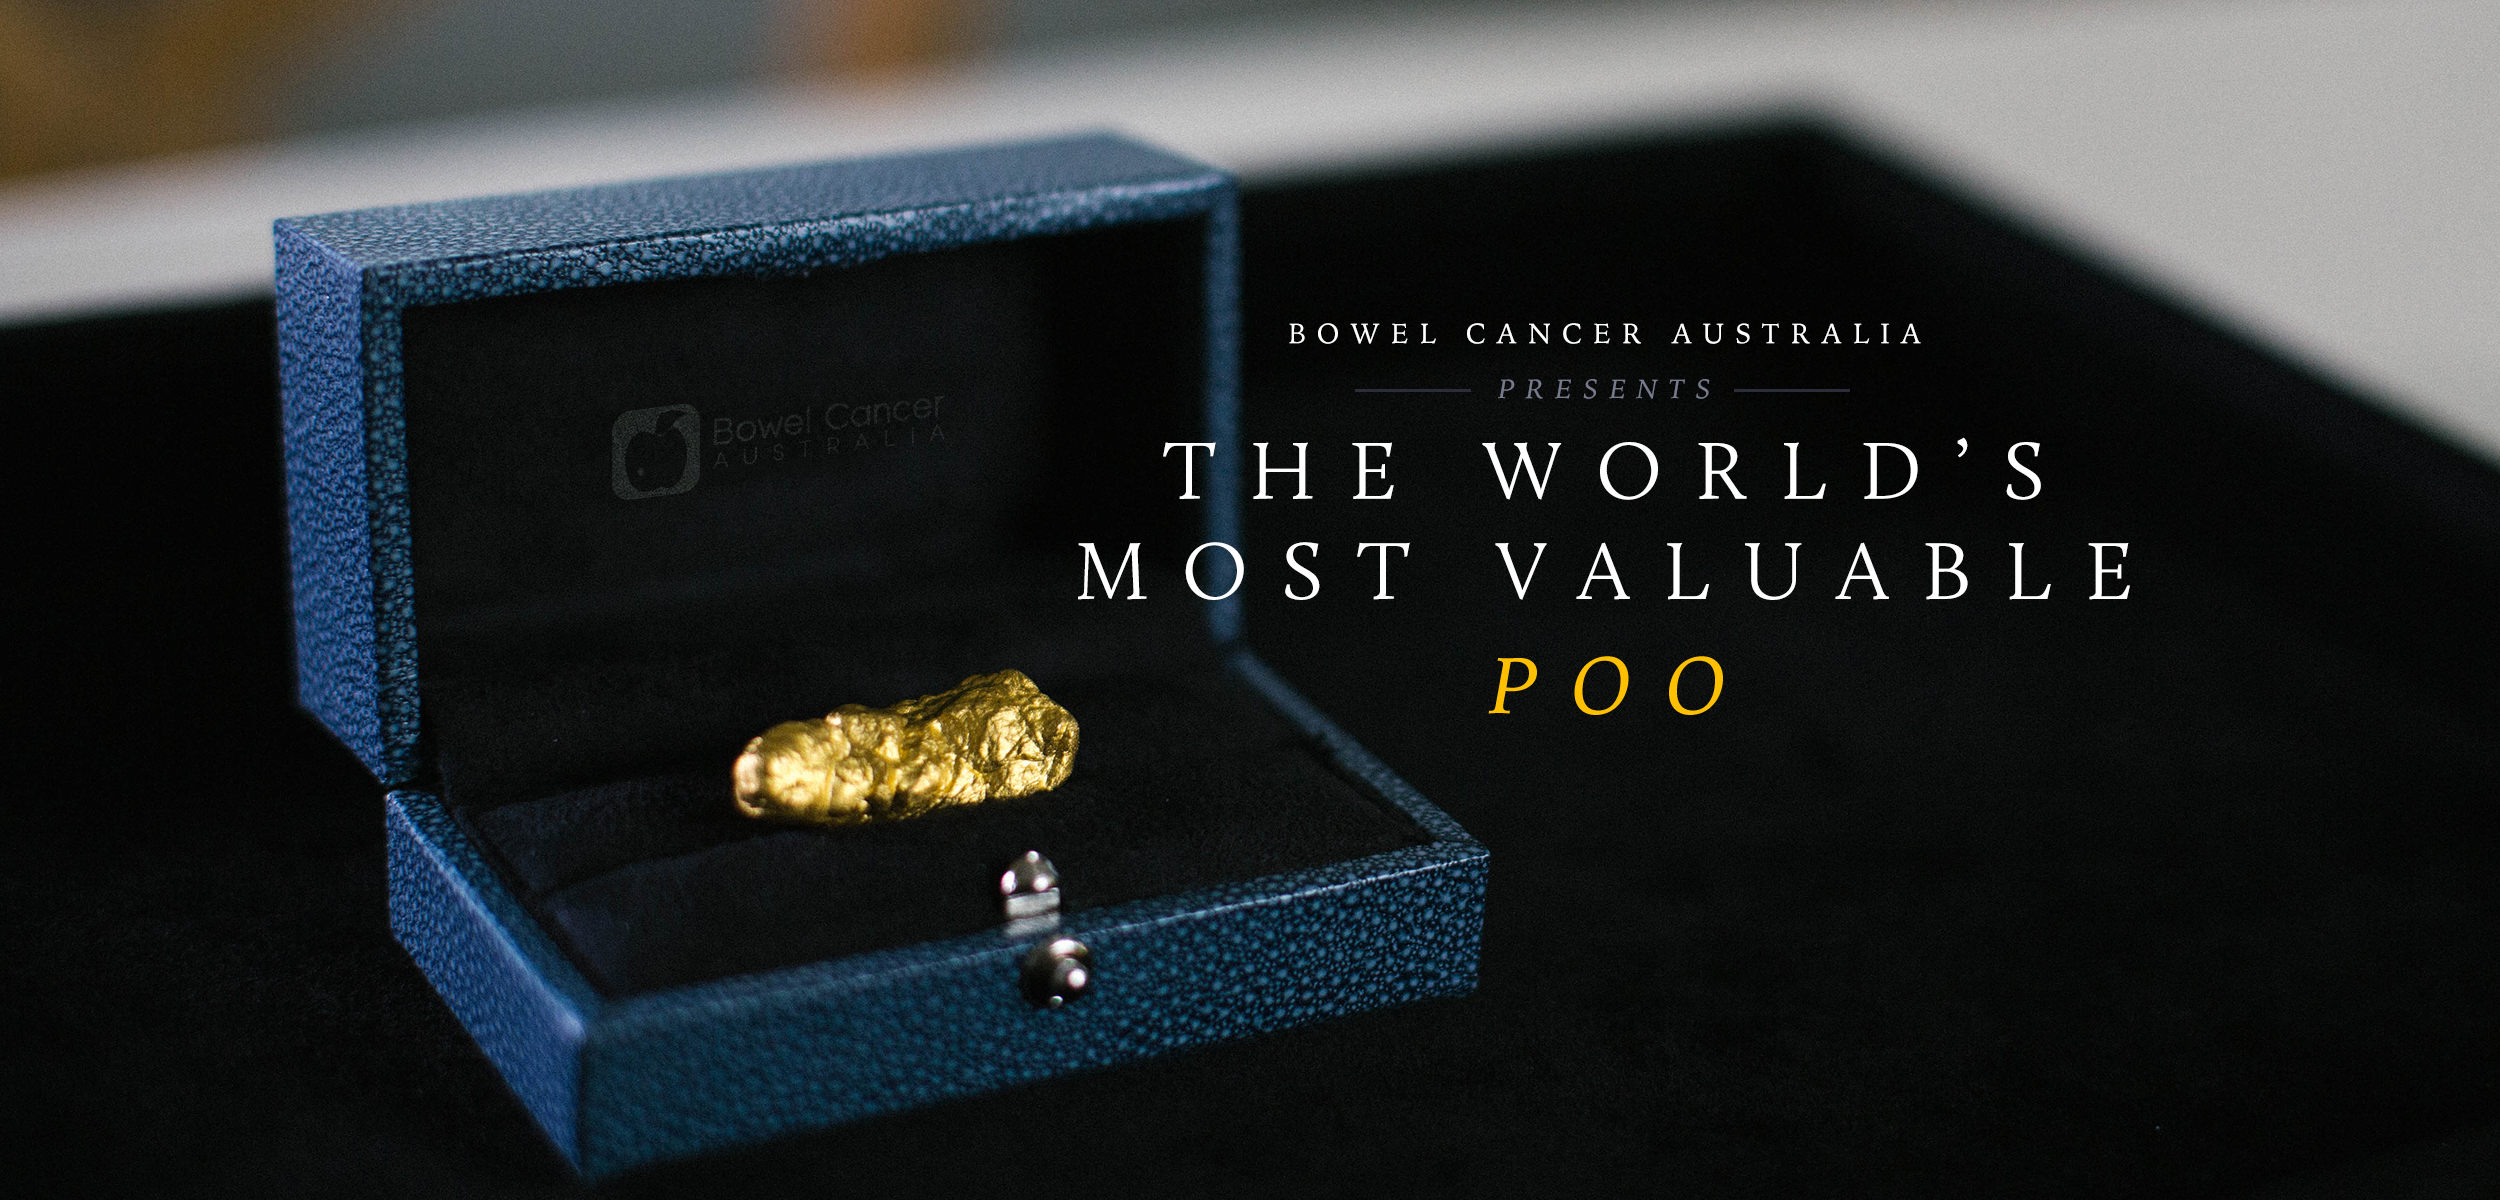 Cox Inall Change and BWM Dentsu create world's most valuable poo for Bowel Cancer Australia